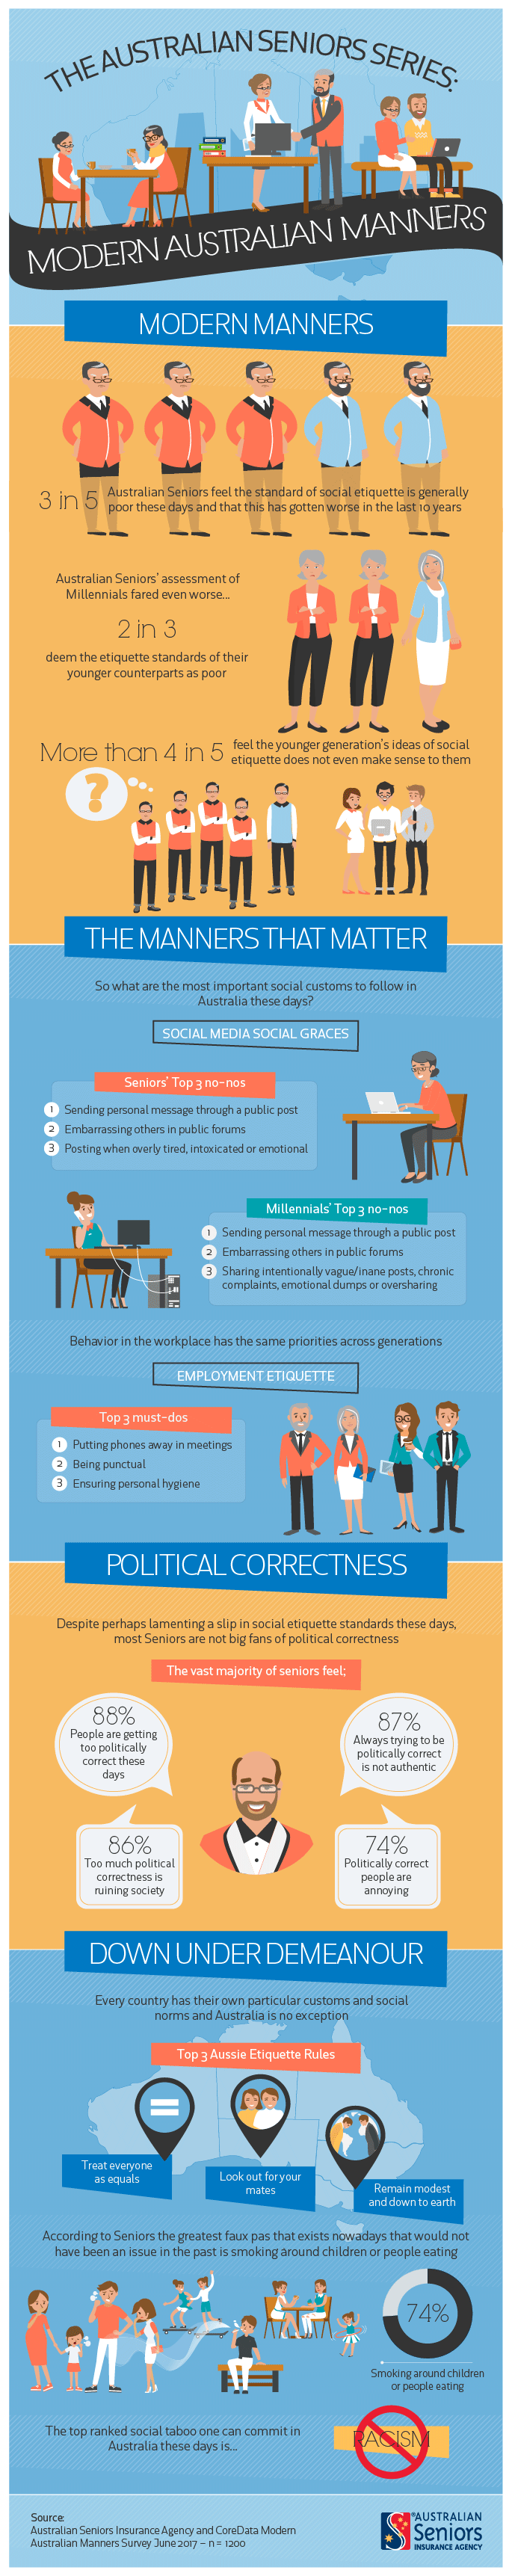 modern-manners-infographic